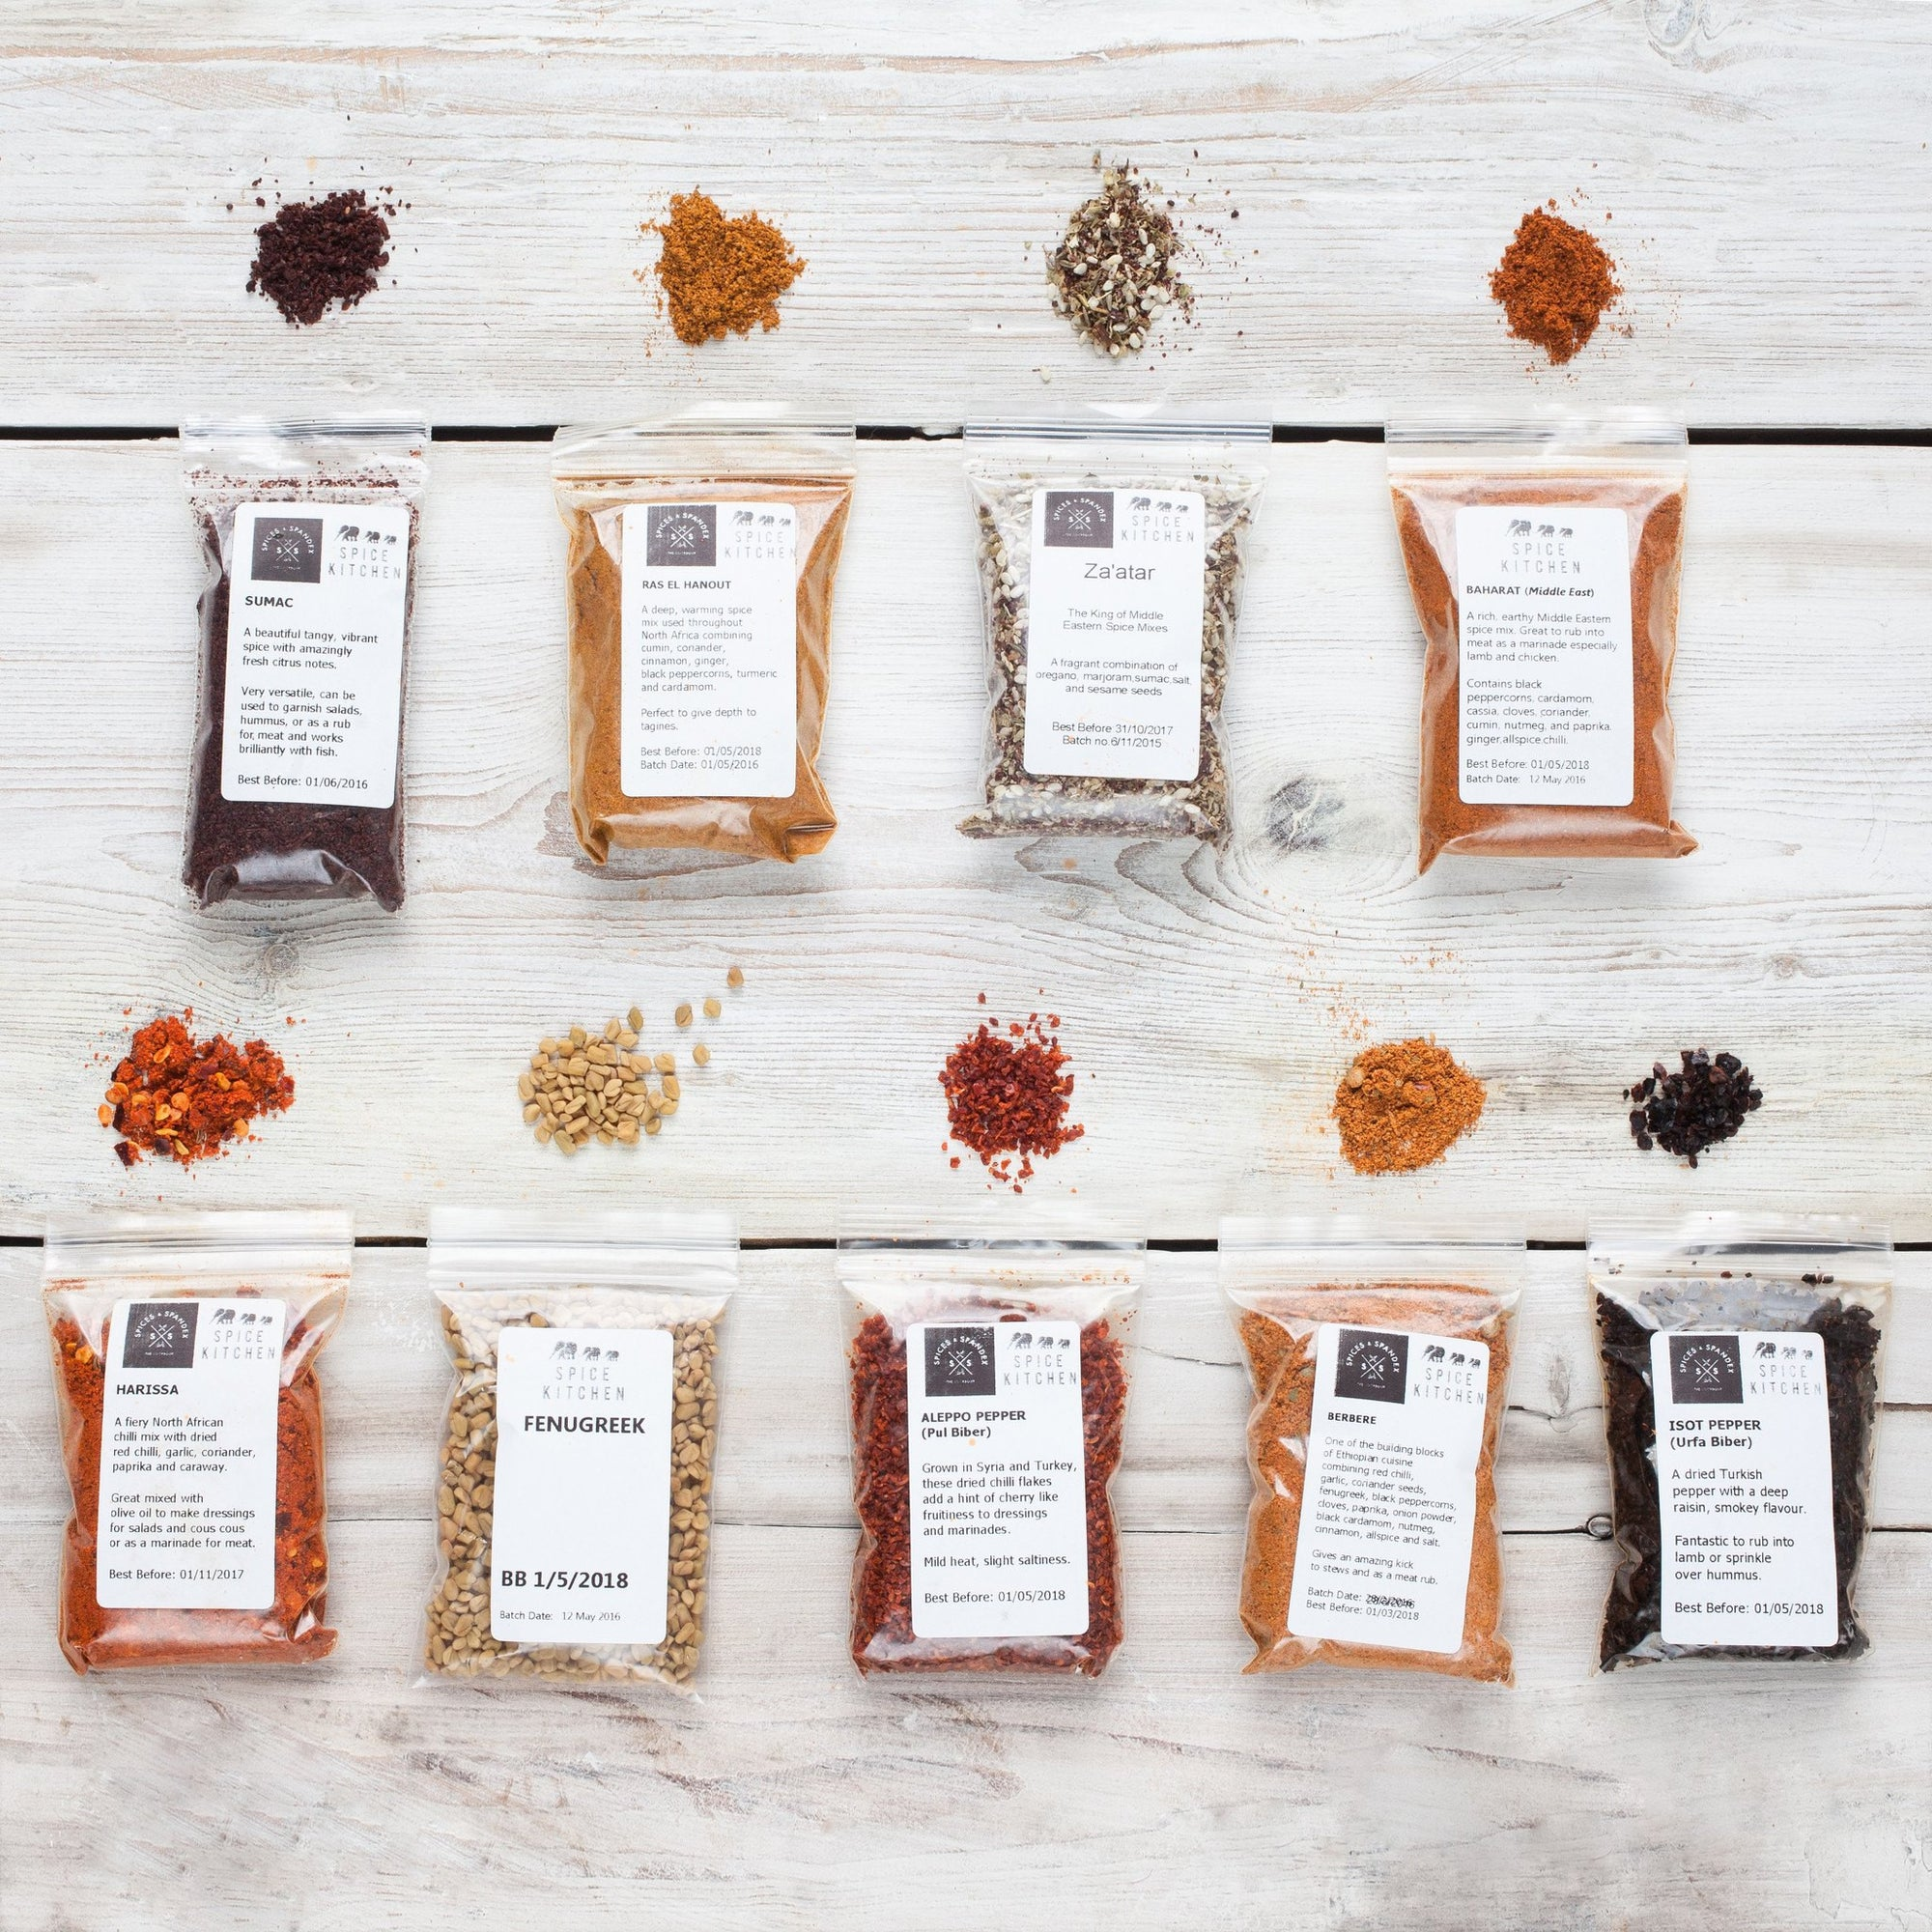 World Spice Blends & BBQ Rubs Collection - Spice Kitchen - Spices, Spice Blends, Gifts & Cookware